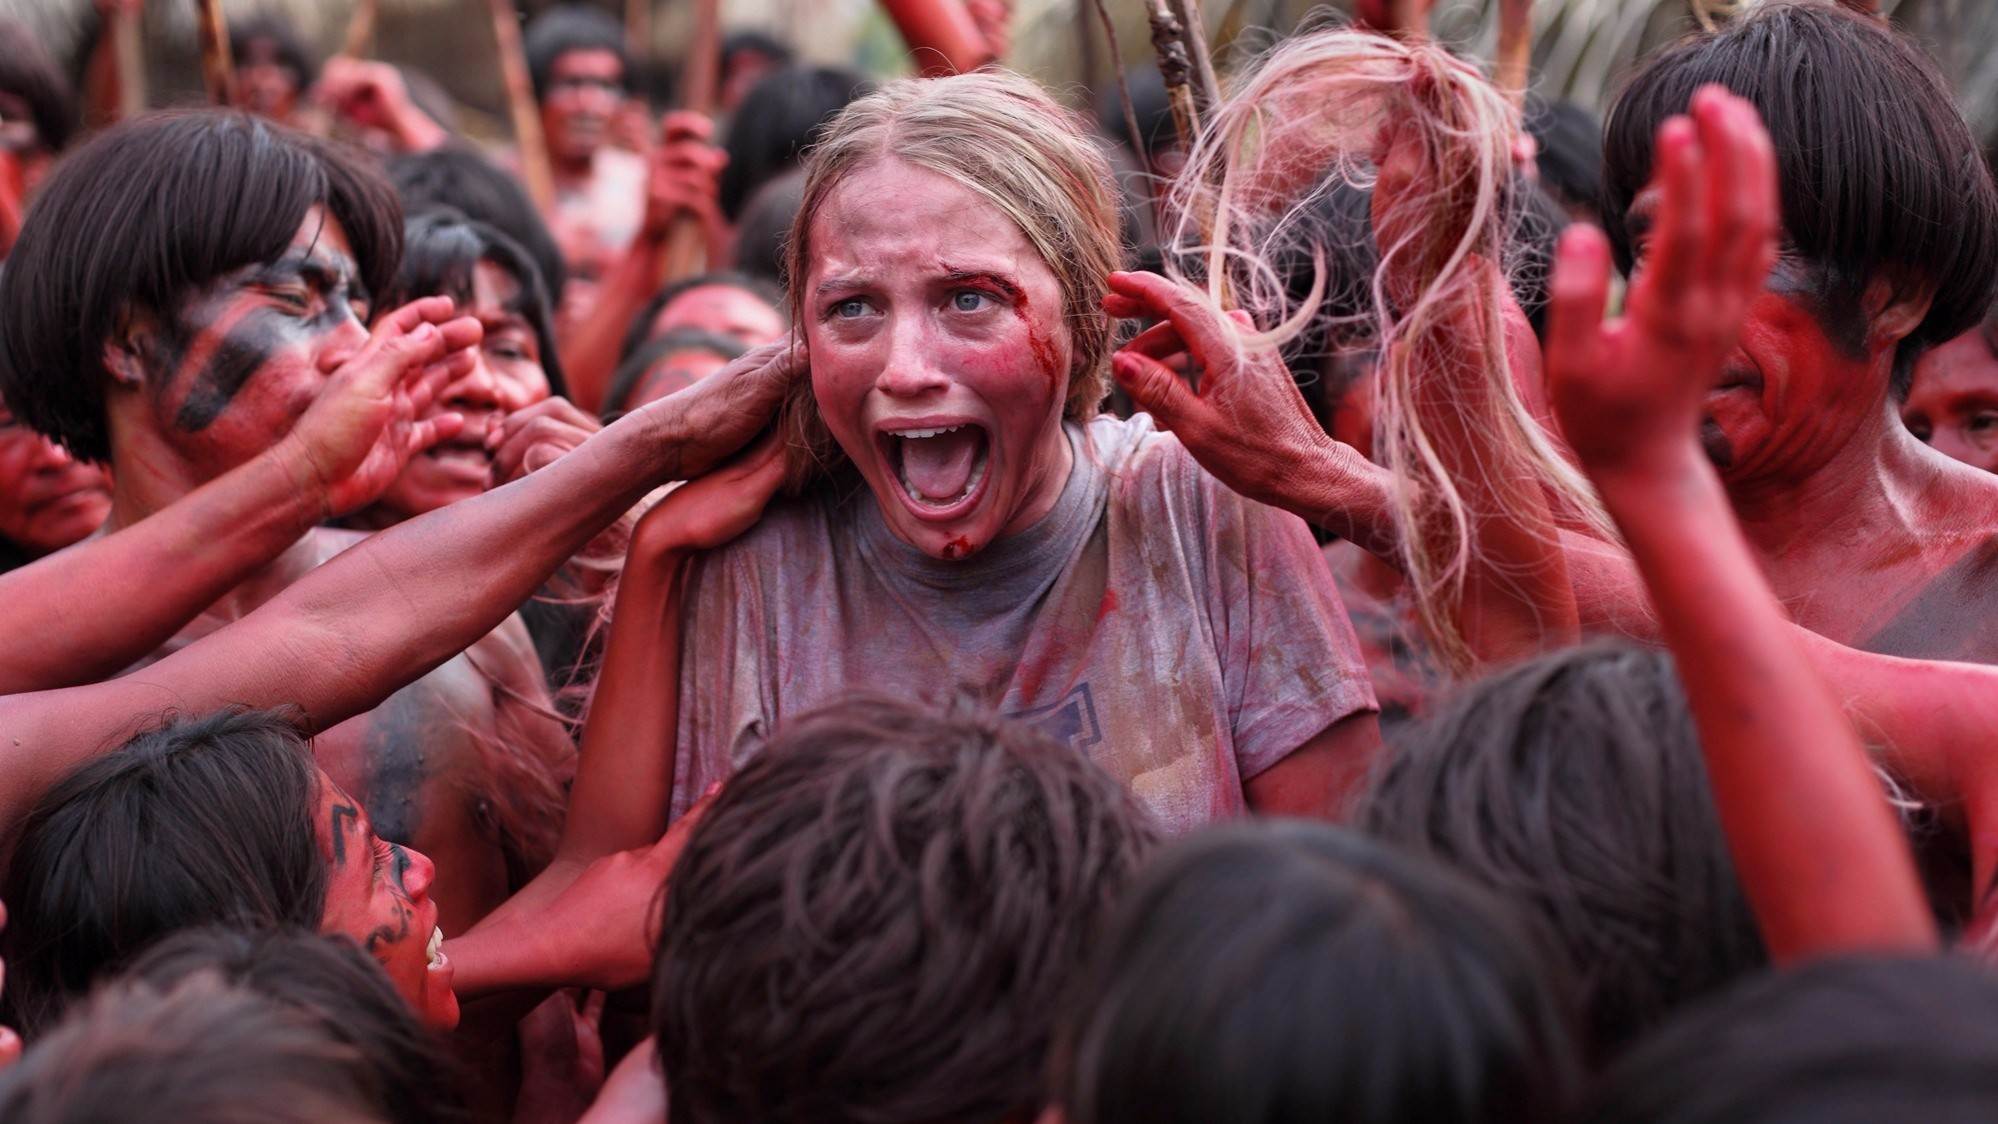 BEHOLD 'THE GREEN INFERNO', THE NADIR OF CONTEMPORARY GRINDHOUSE (OR MAYBE DON'T)